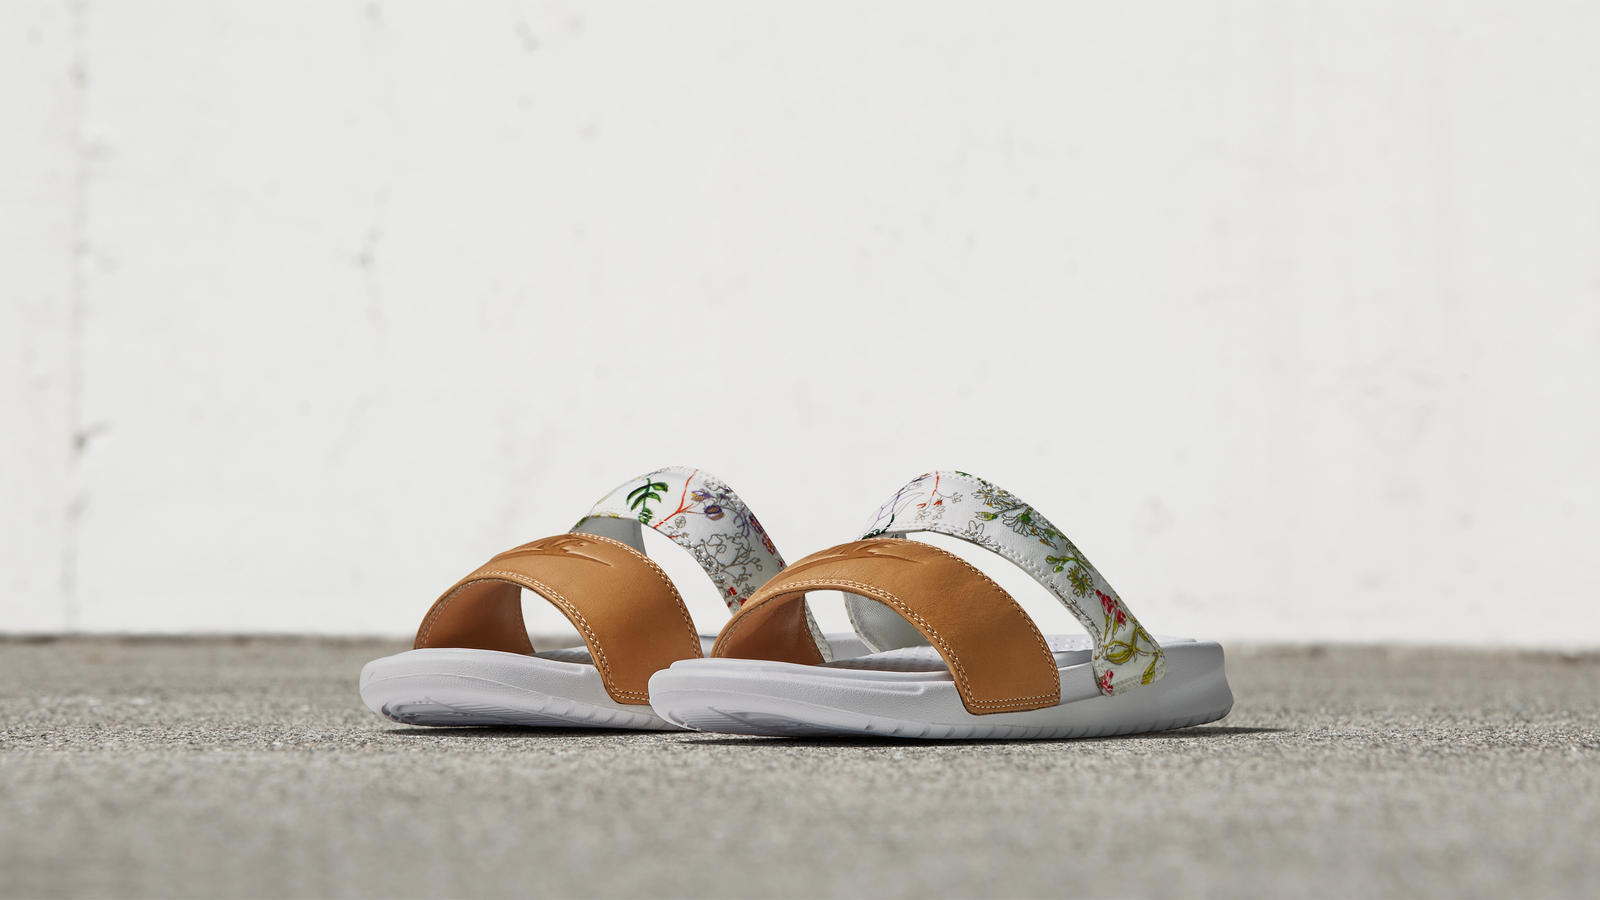 NikeCourt x Liberty Benassi Slide